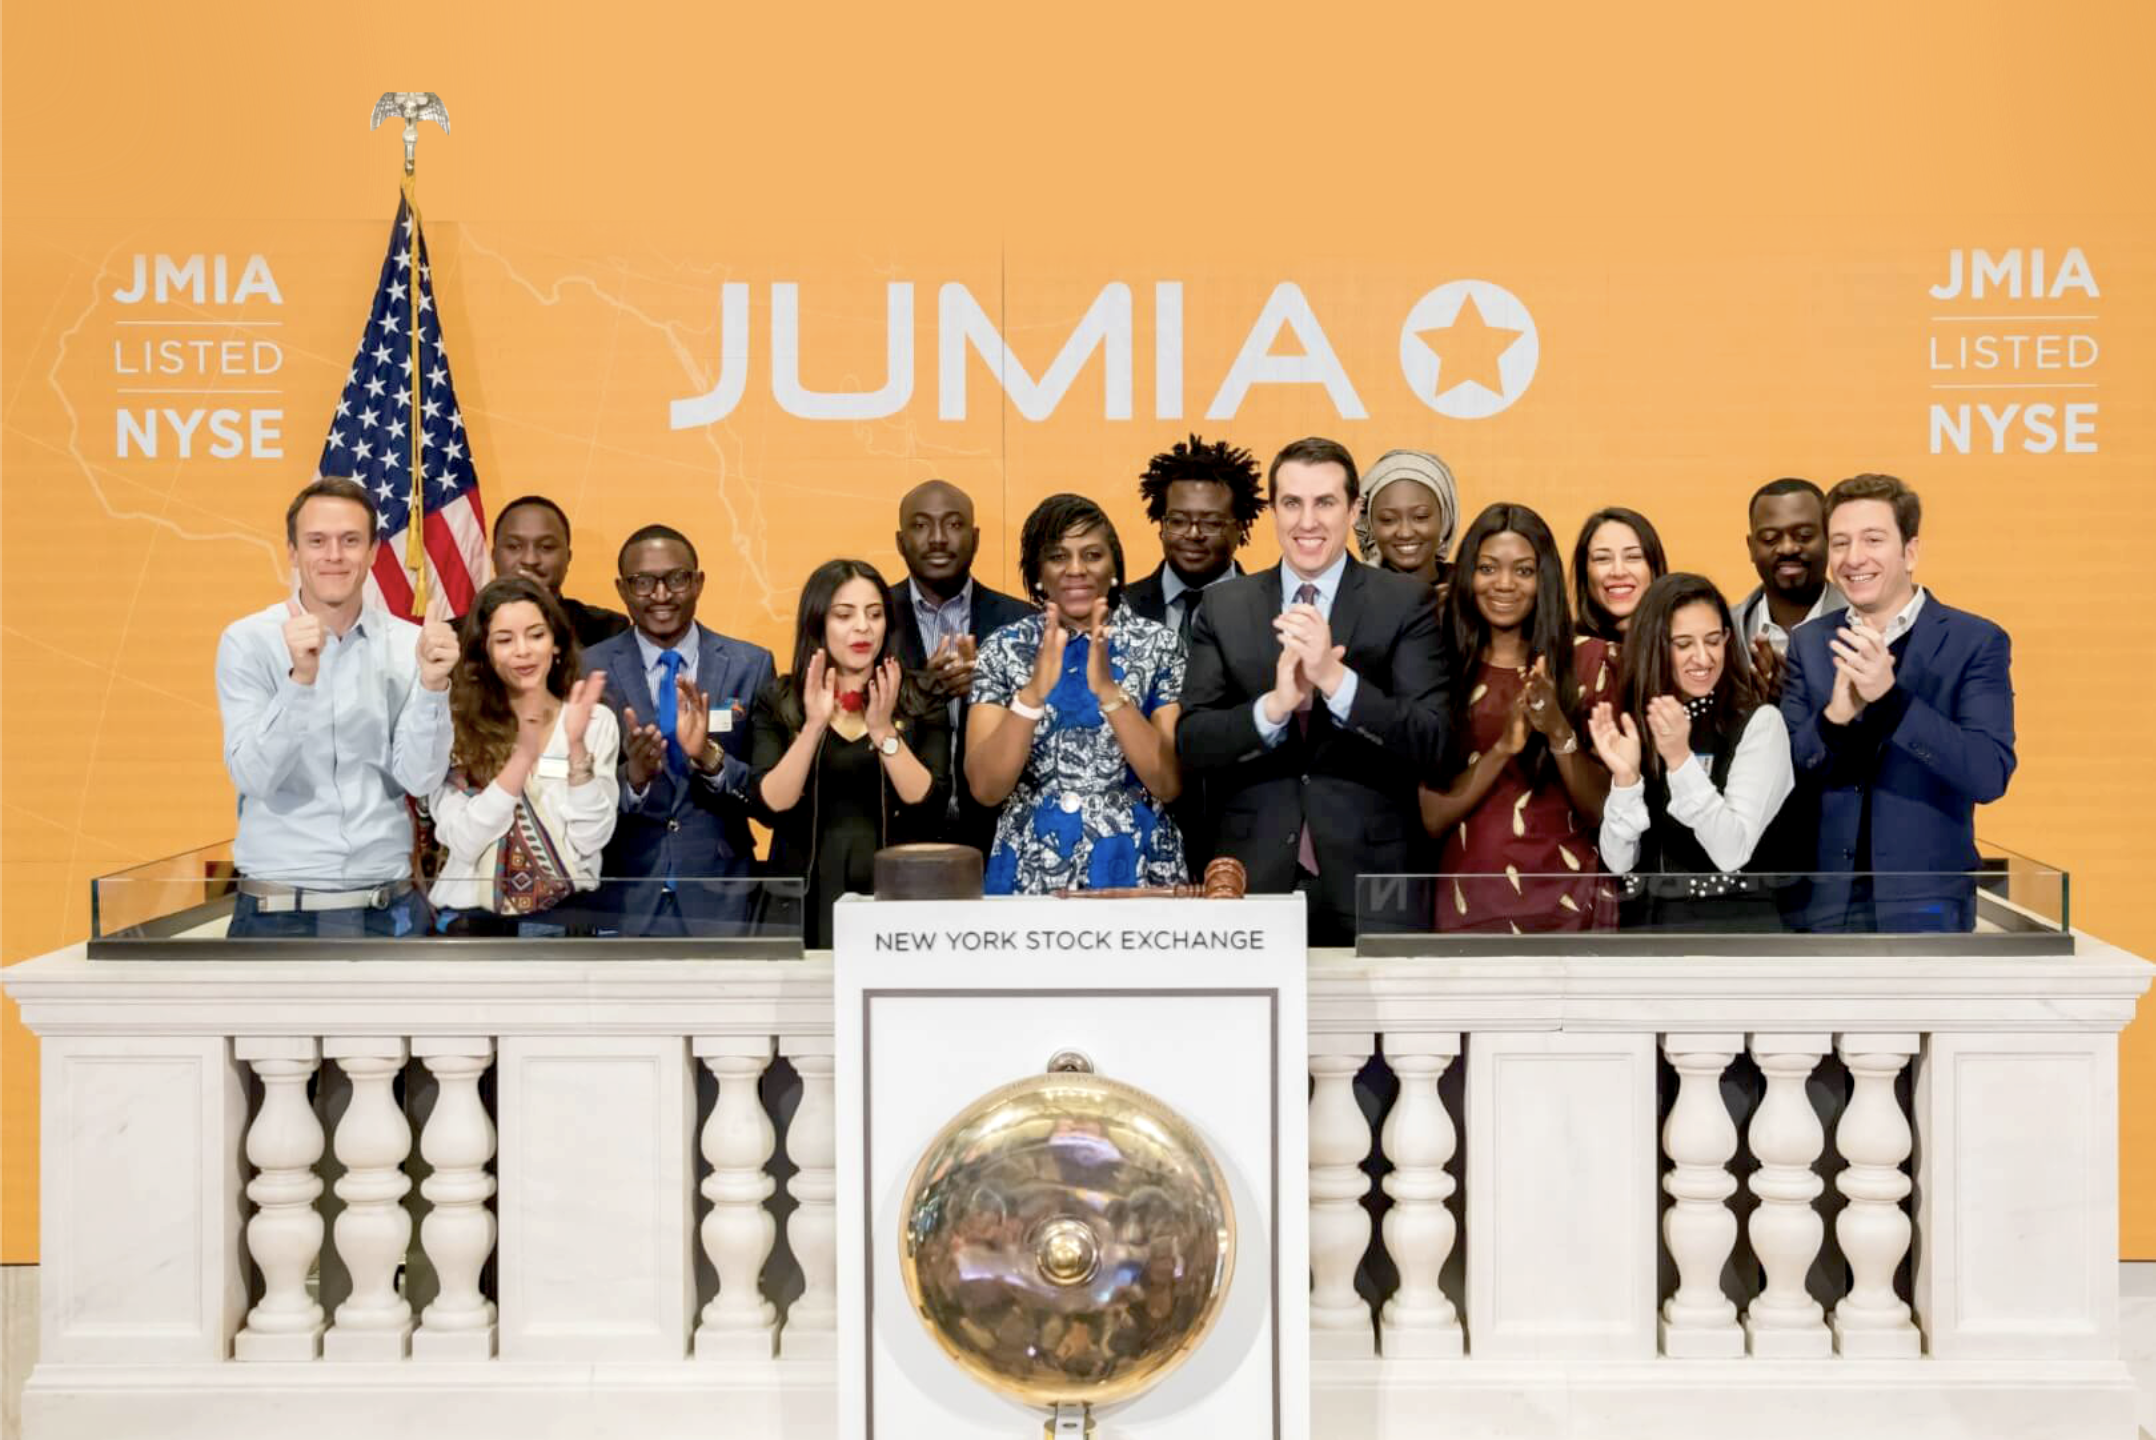 Why Jumia is more of an African-focused business than an African start-up